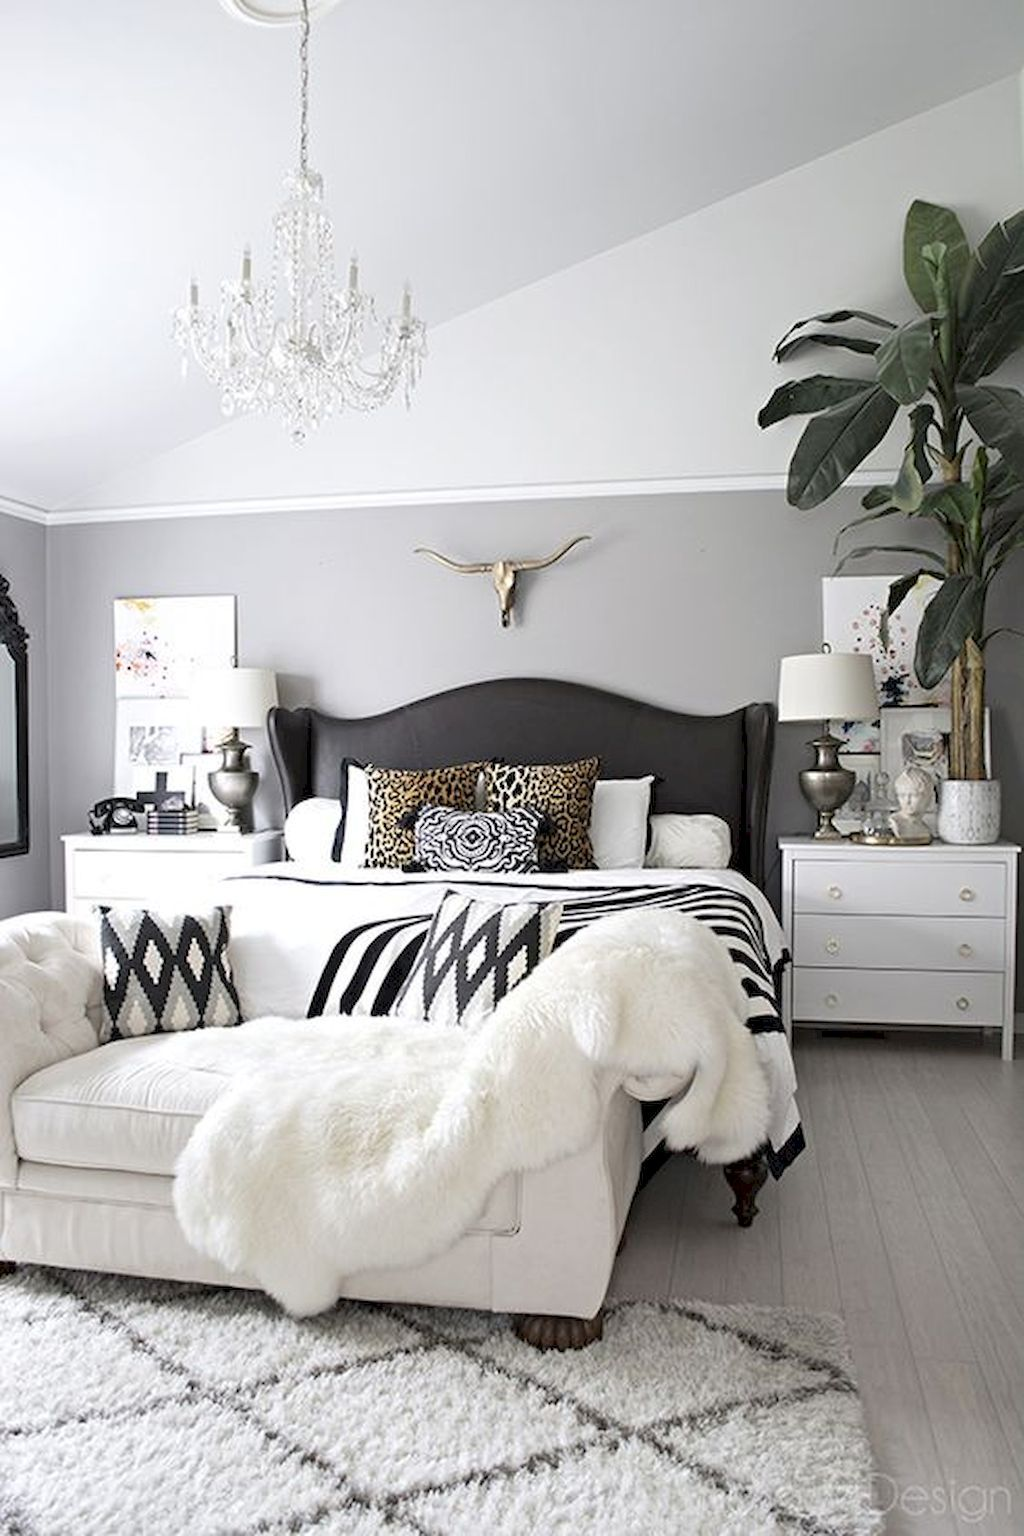 Cool 60 Cool Eclectic Master Bedroom Decor Ideas And Remodel https Master Bedroom Decorating Ideas Eclectic on eclectic master bathroom, eclectic den decorating ideas, eclectic teen bedroom, eclectic bedroom furniture, superhero boys bedroom decorating ideas, eclectic backyard decorating ideas, eclectic kitchen decorating ideas, eclectic interior decorating ideas,